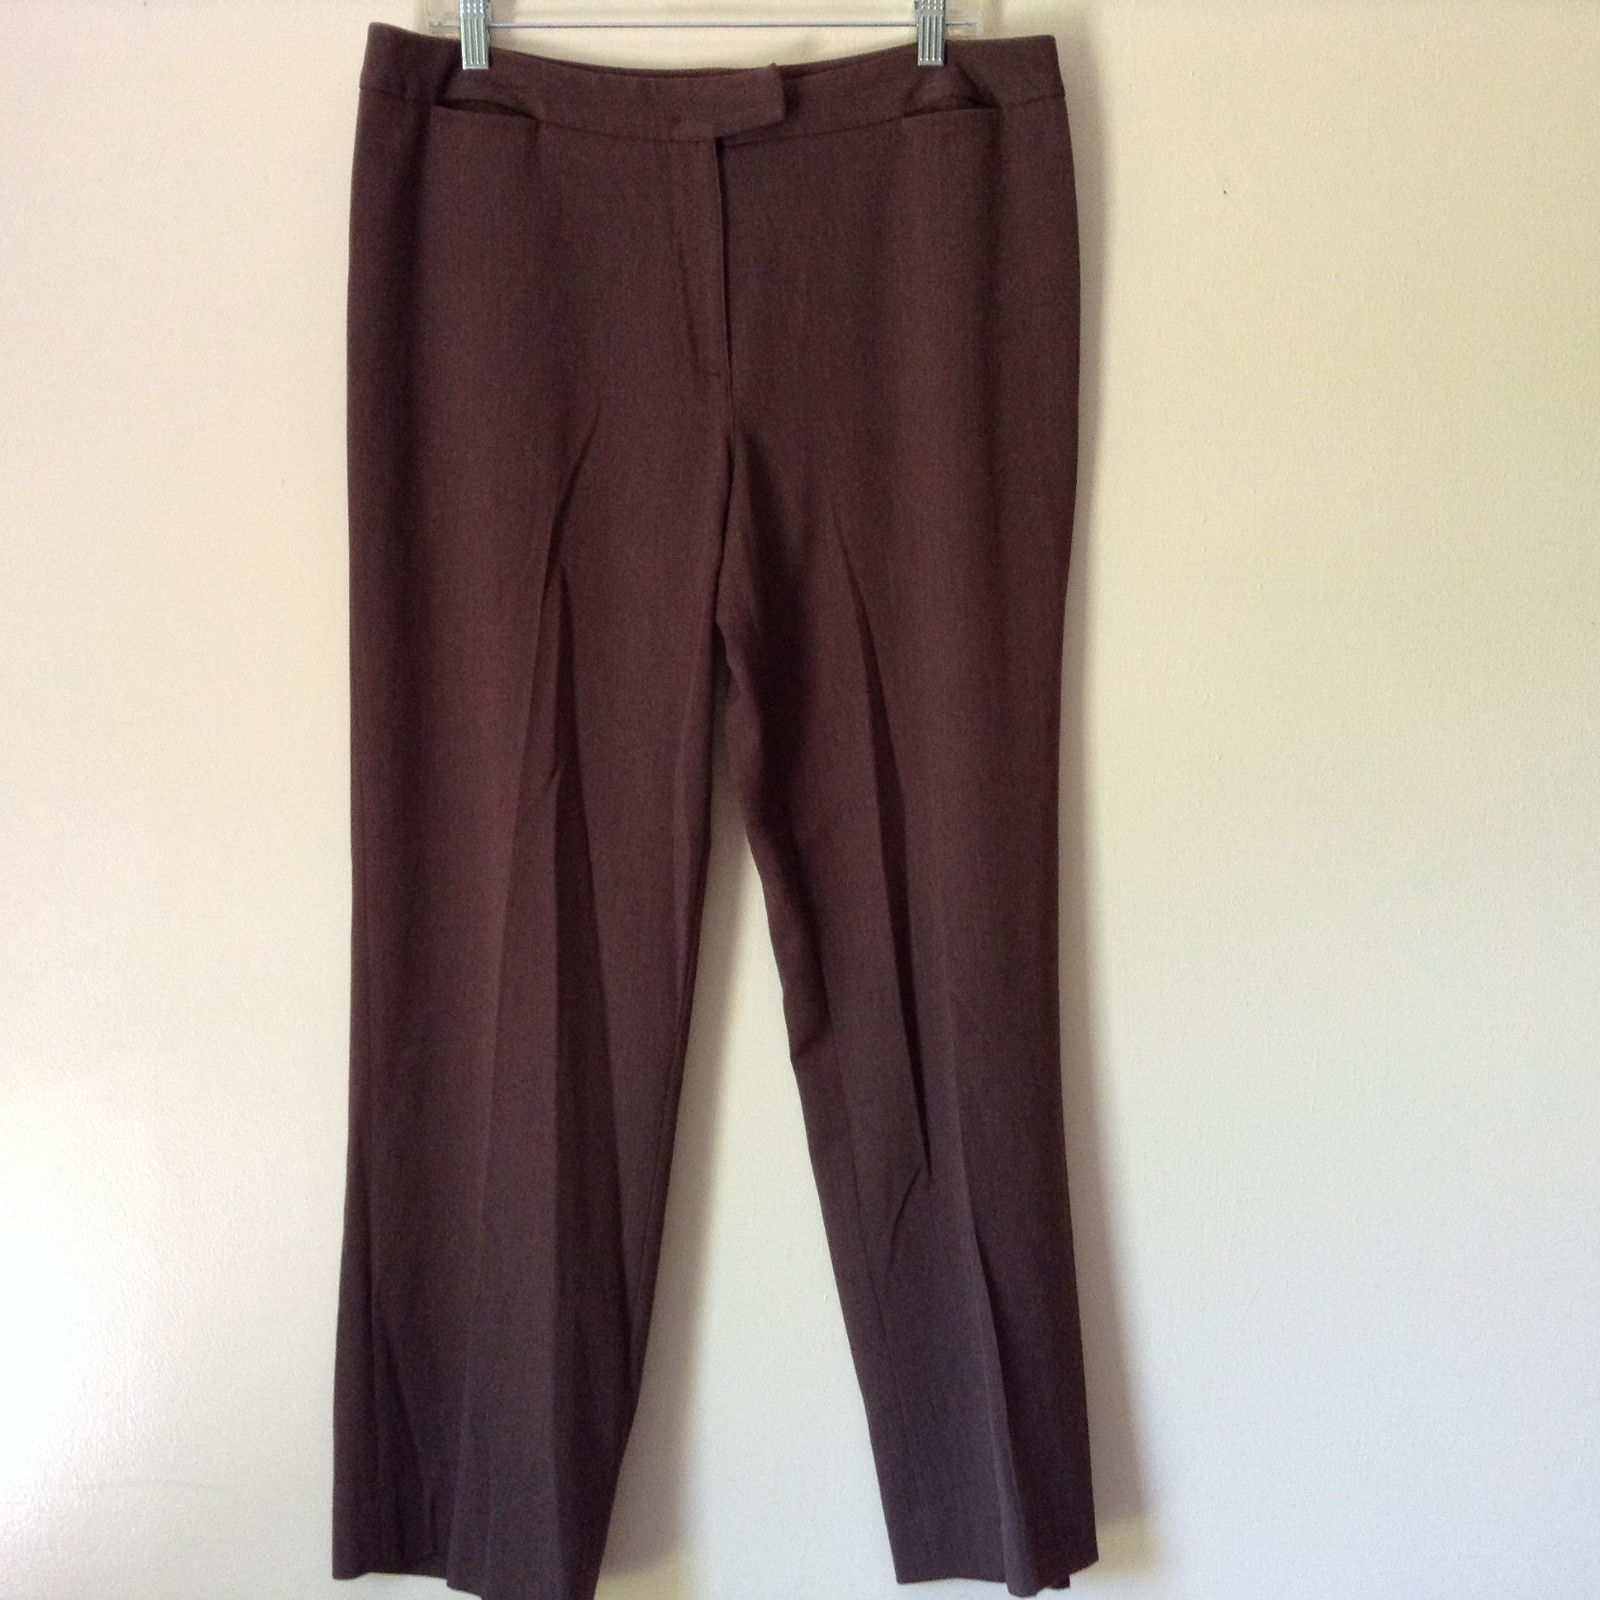 Brown Dress Pants by Pendleton Polyester Rayon Spandex Size 14